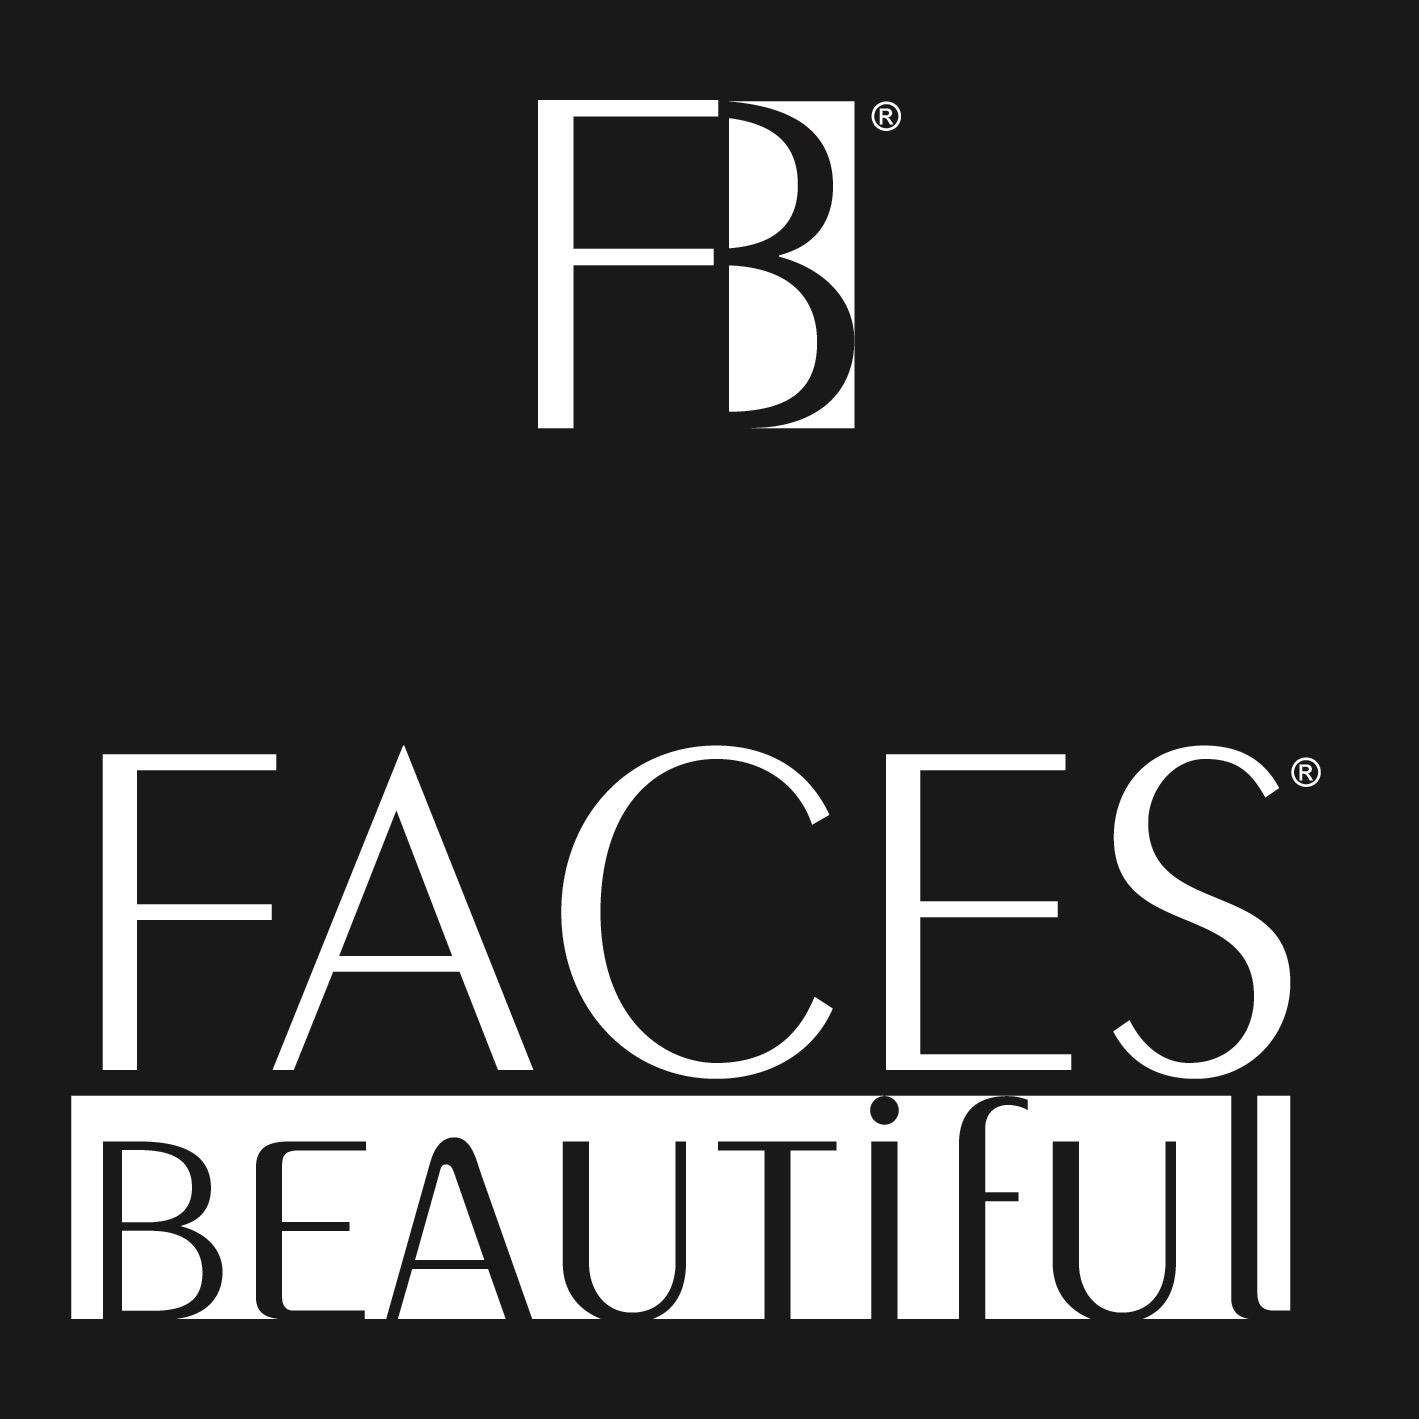 Faces Beautiful®